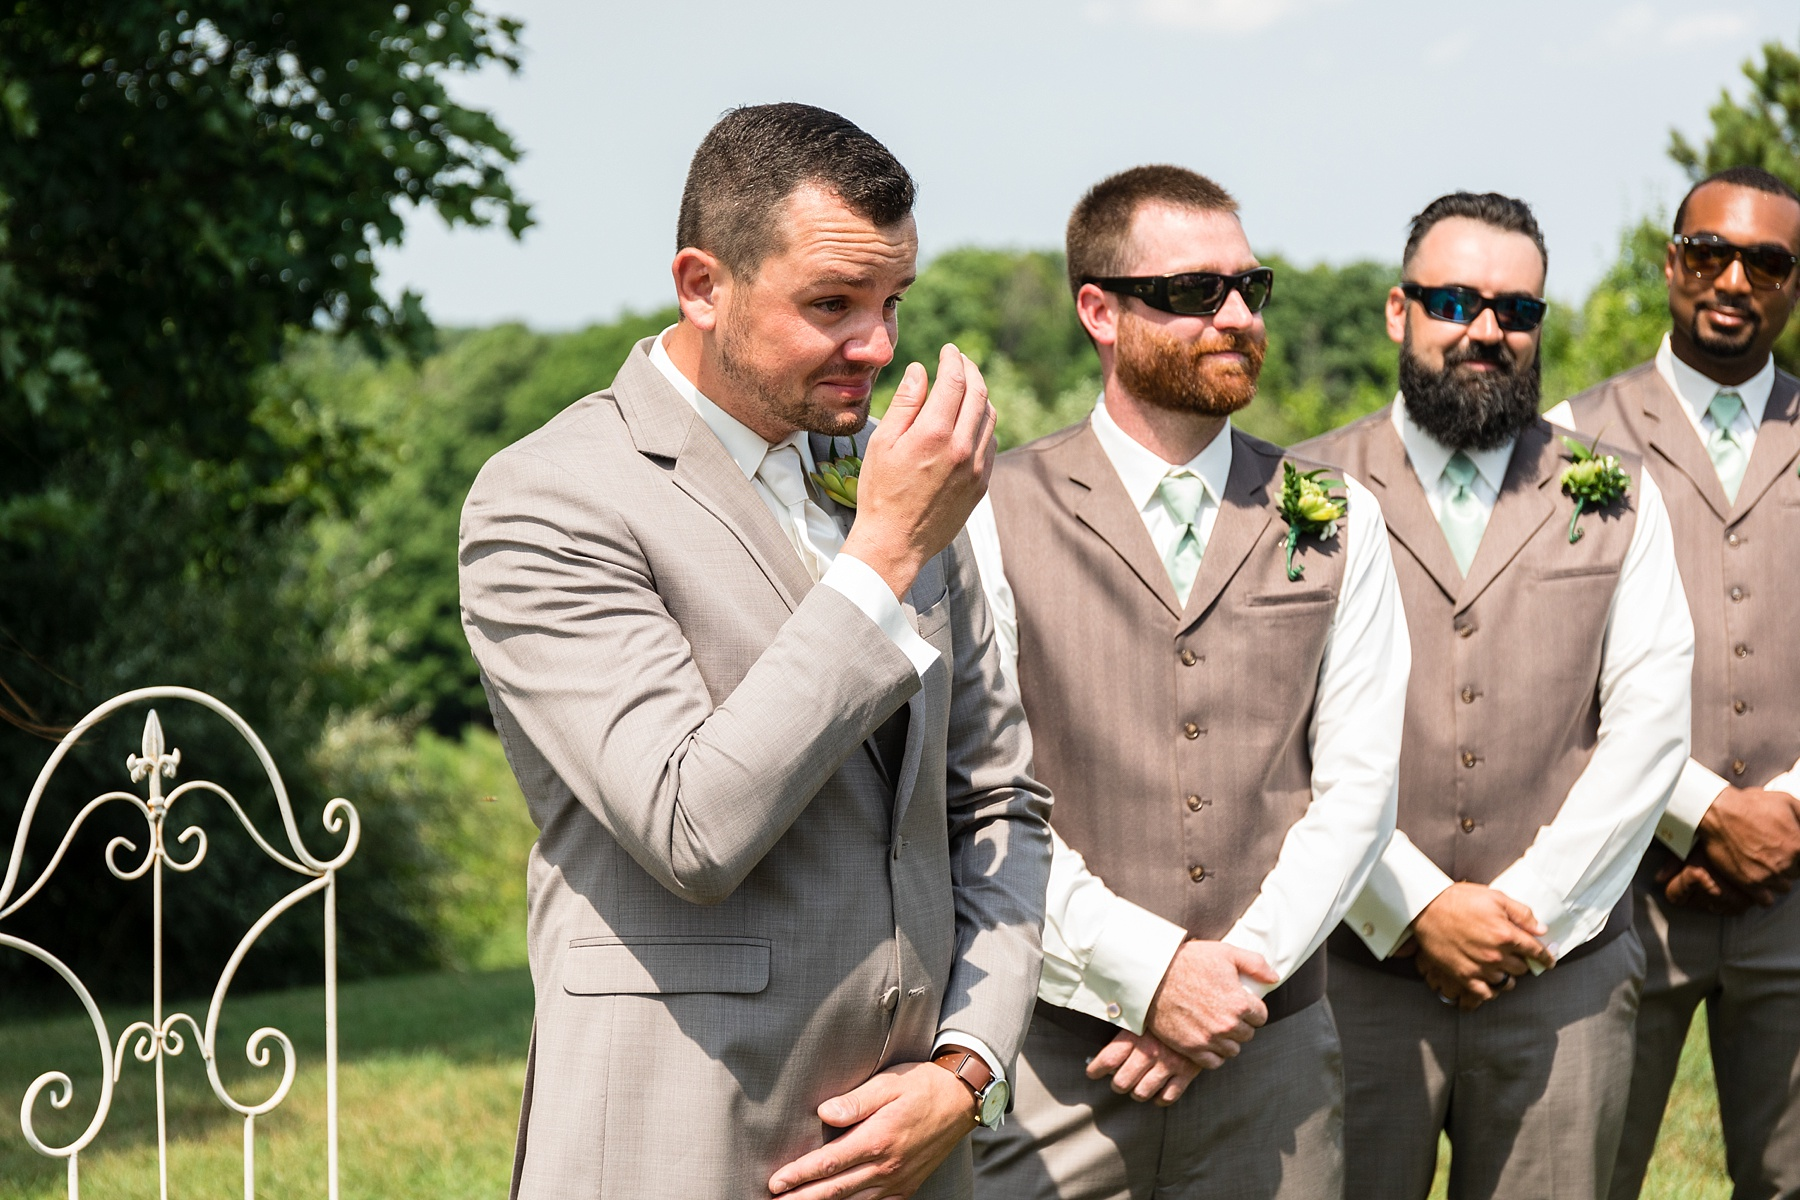 Brandon_Shafer_Photography_Lauren_Vasile_Ciccone_Vineyard_Suttons_Bay_Wedding_0019.jpg